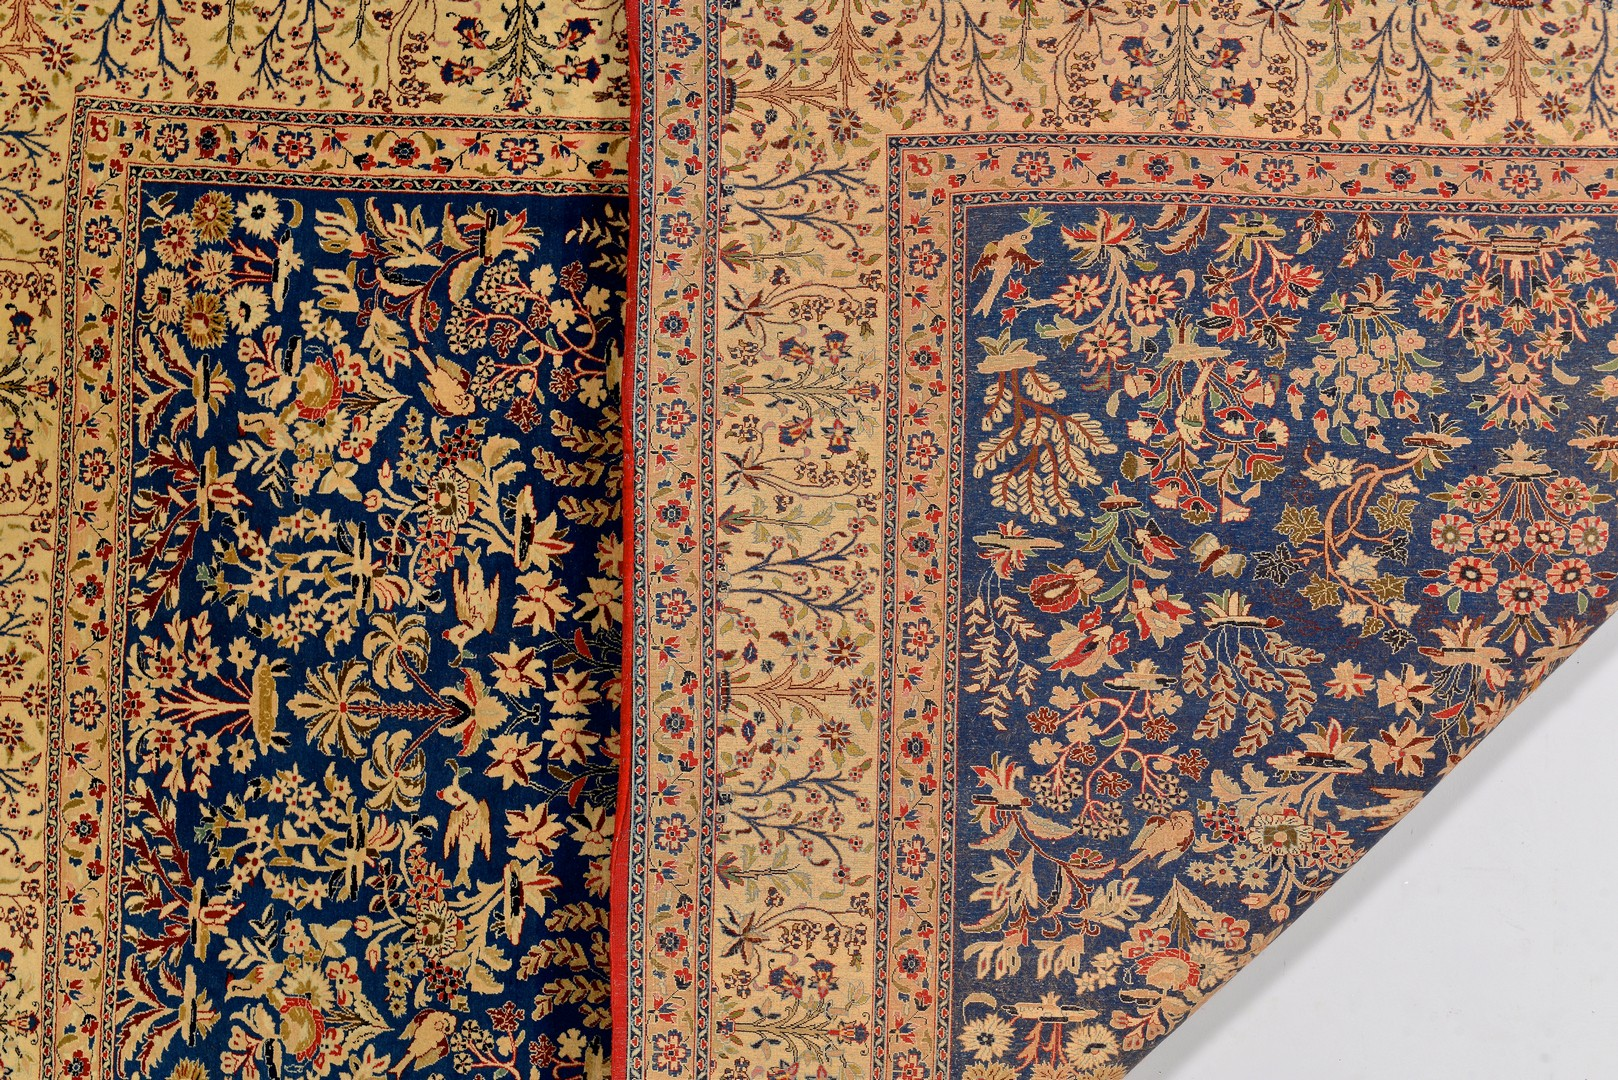 Lot 743: Persian Isphahan or Naien Rug